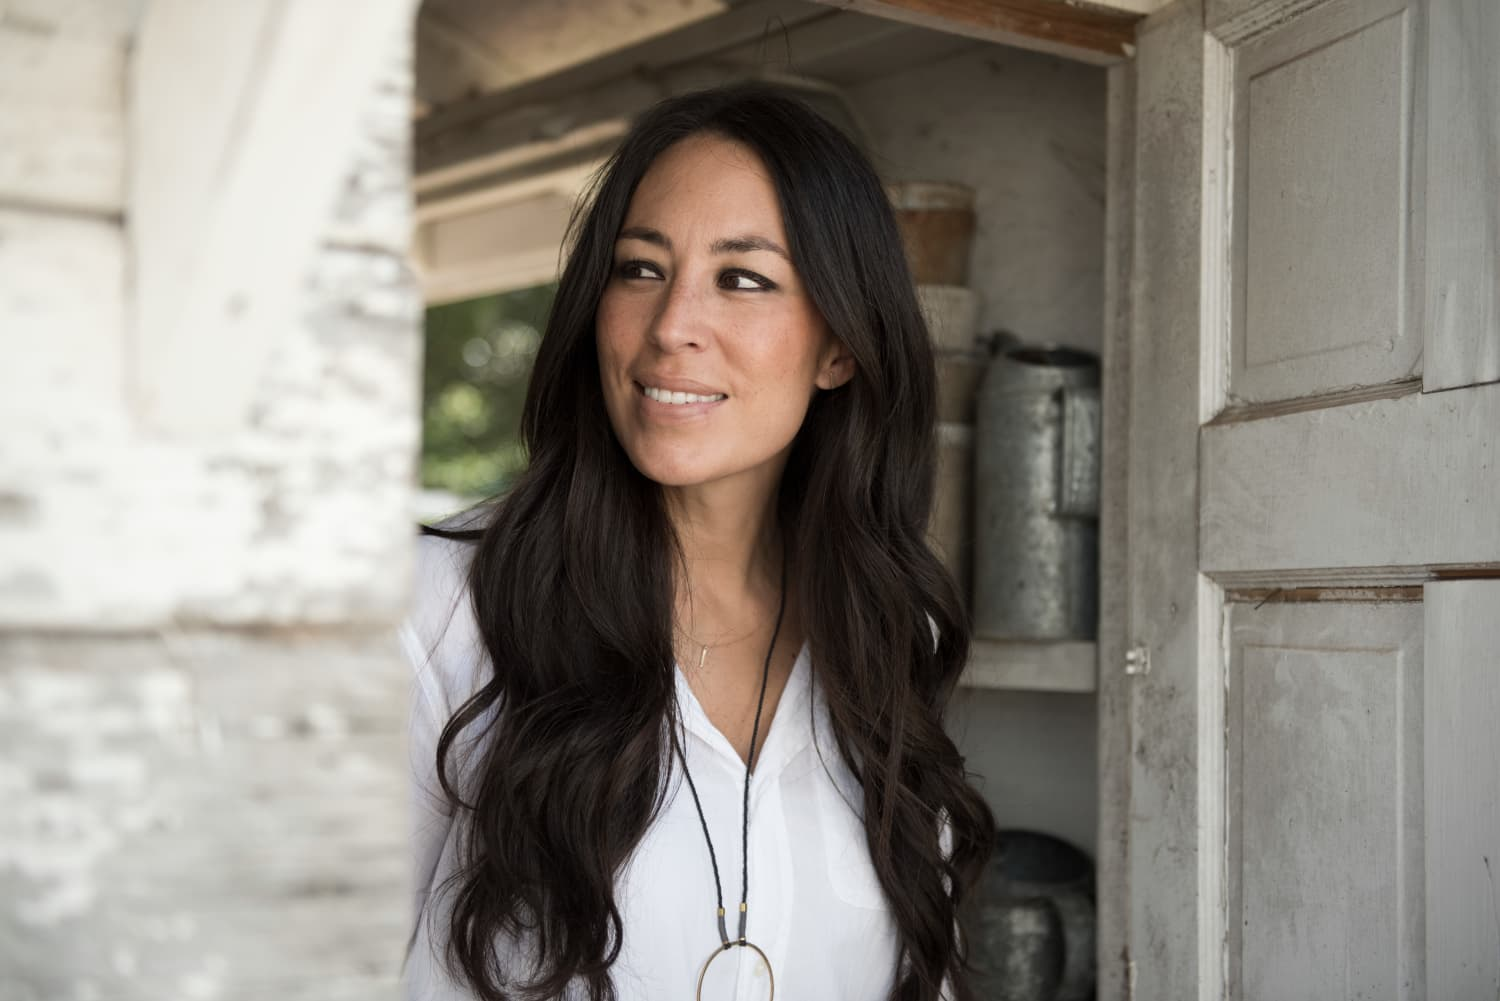 Joanna Gaines Has a Smart Tip For Dealing With Sentimental Clutter